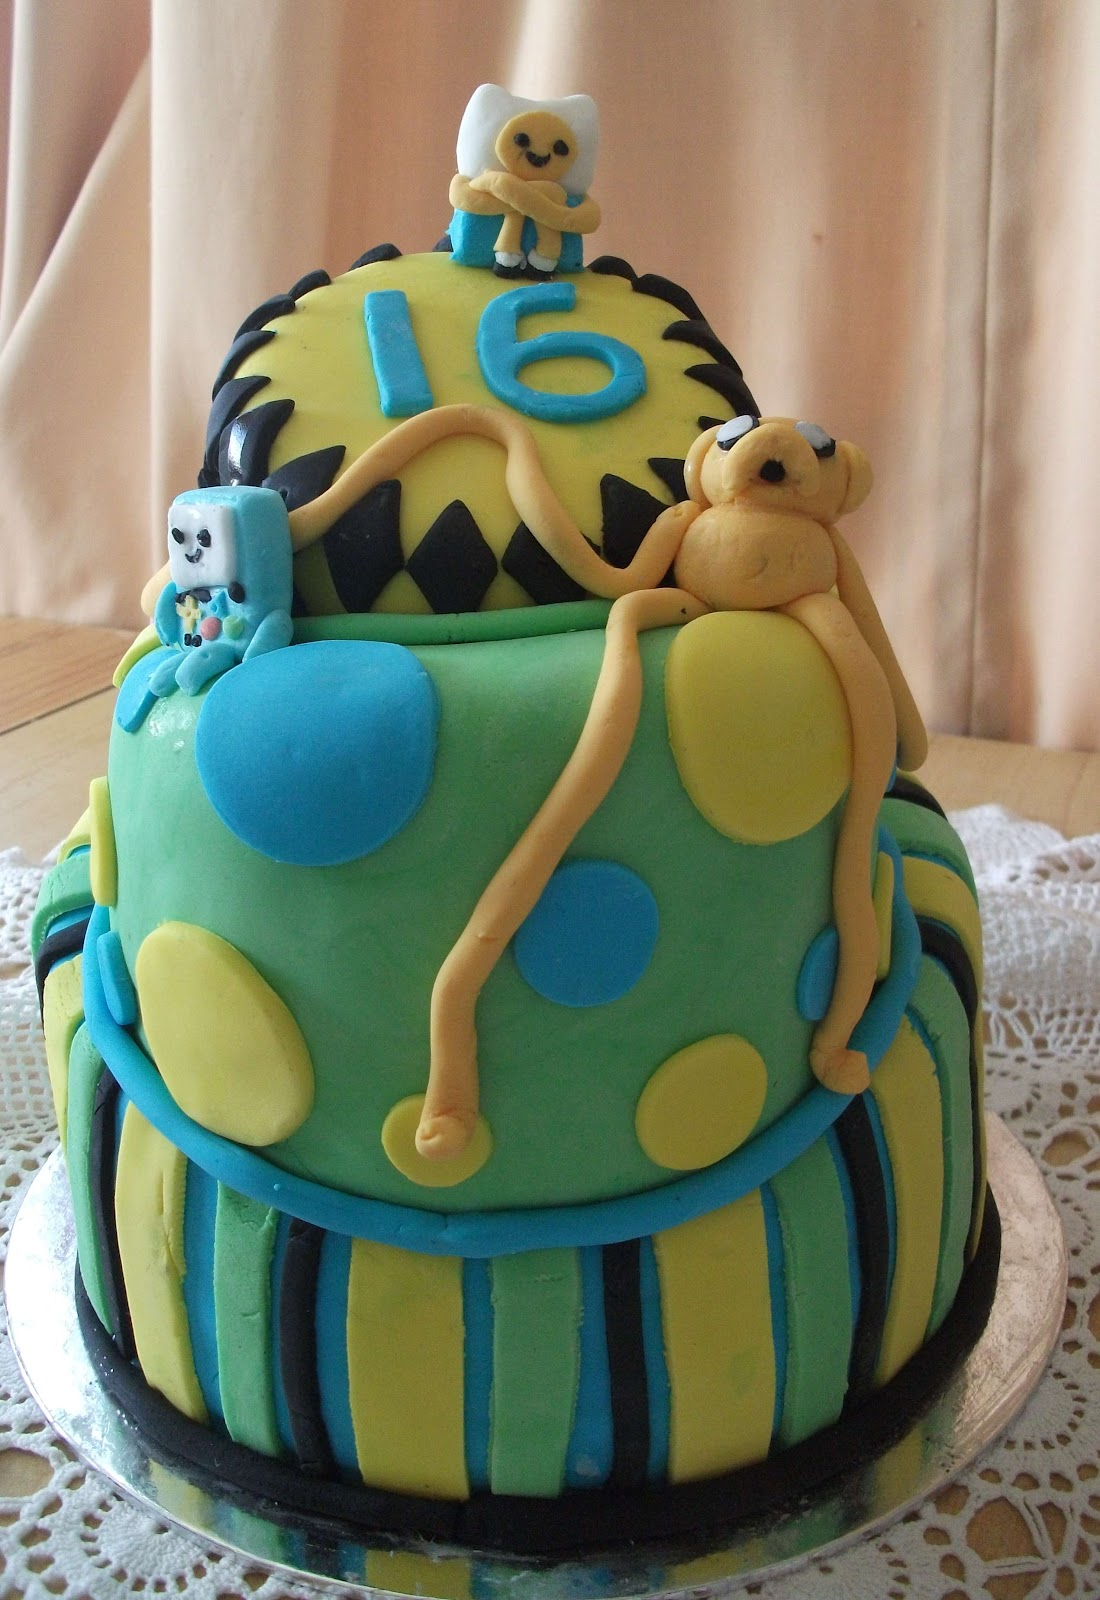 Papercats Crafts Adventure Time Topsy Turvey Cake